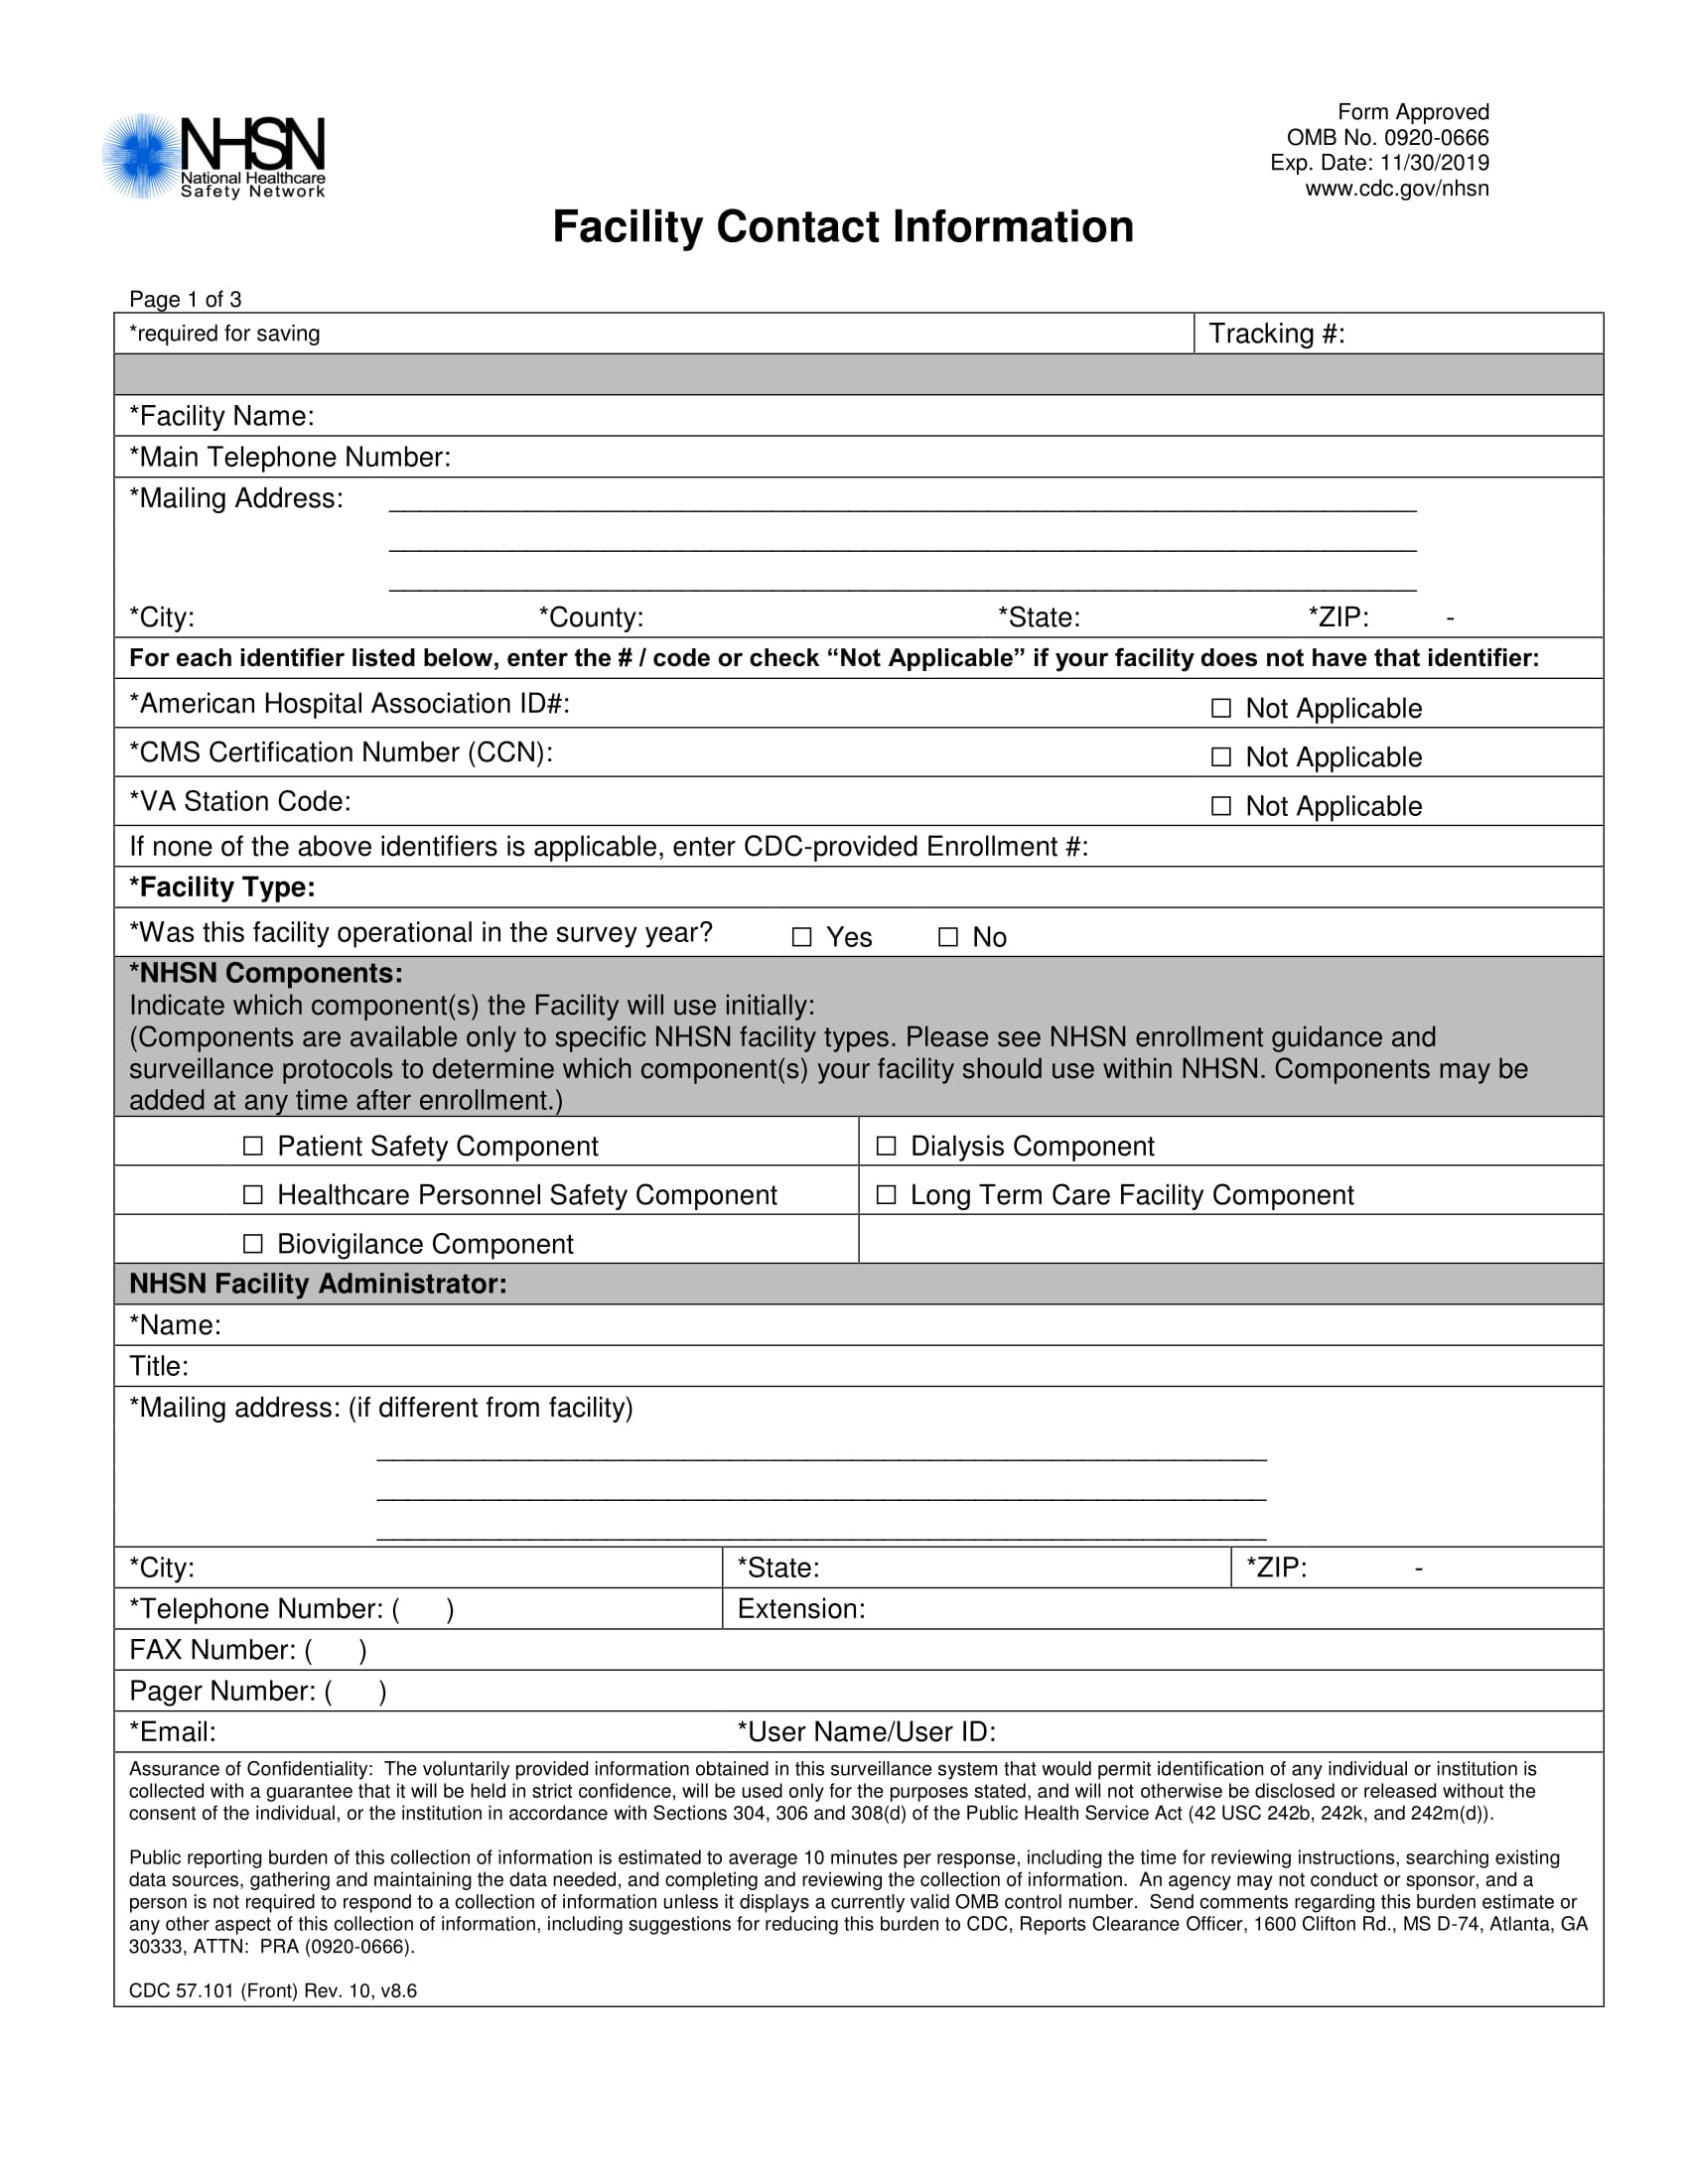 facility contact information form 1